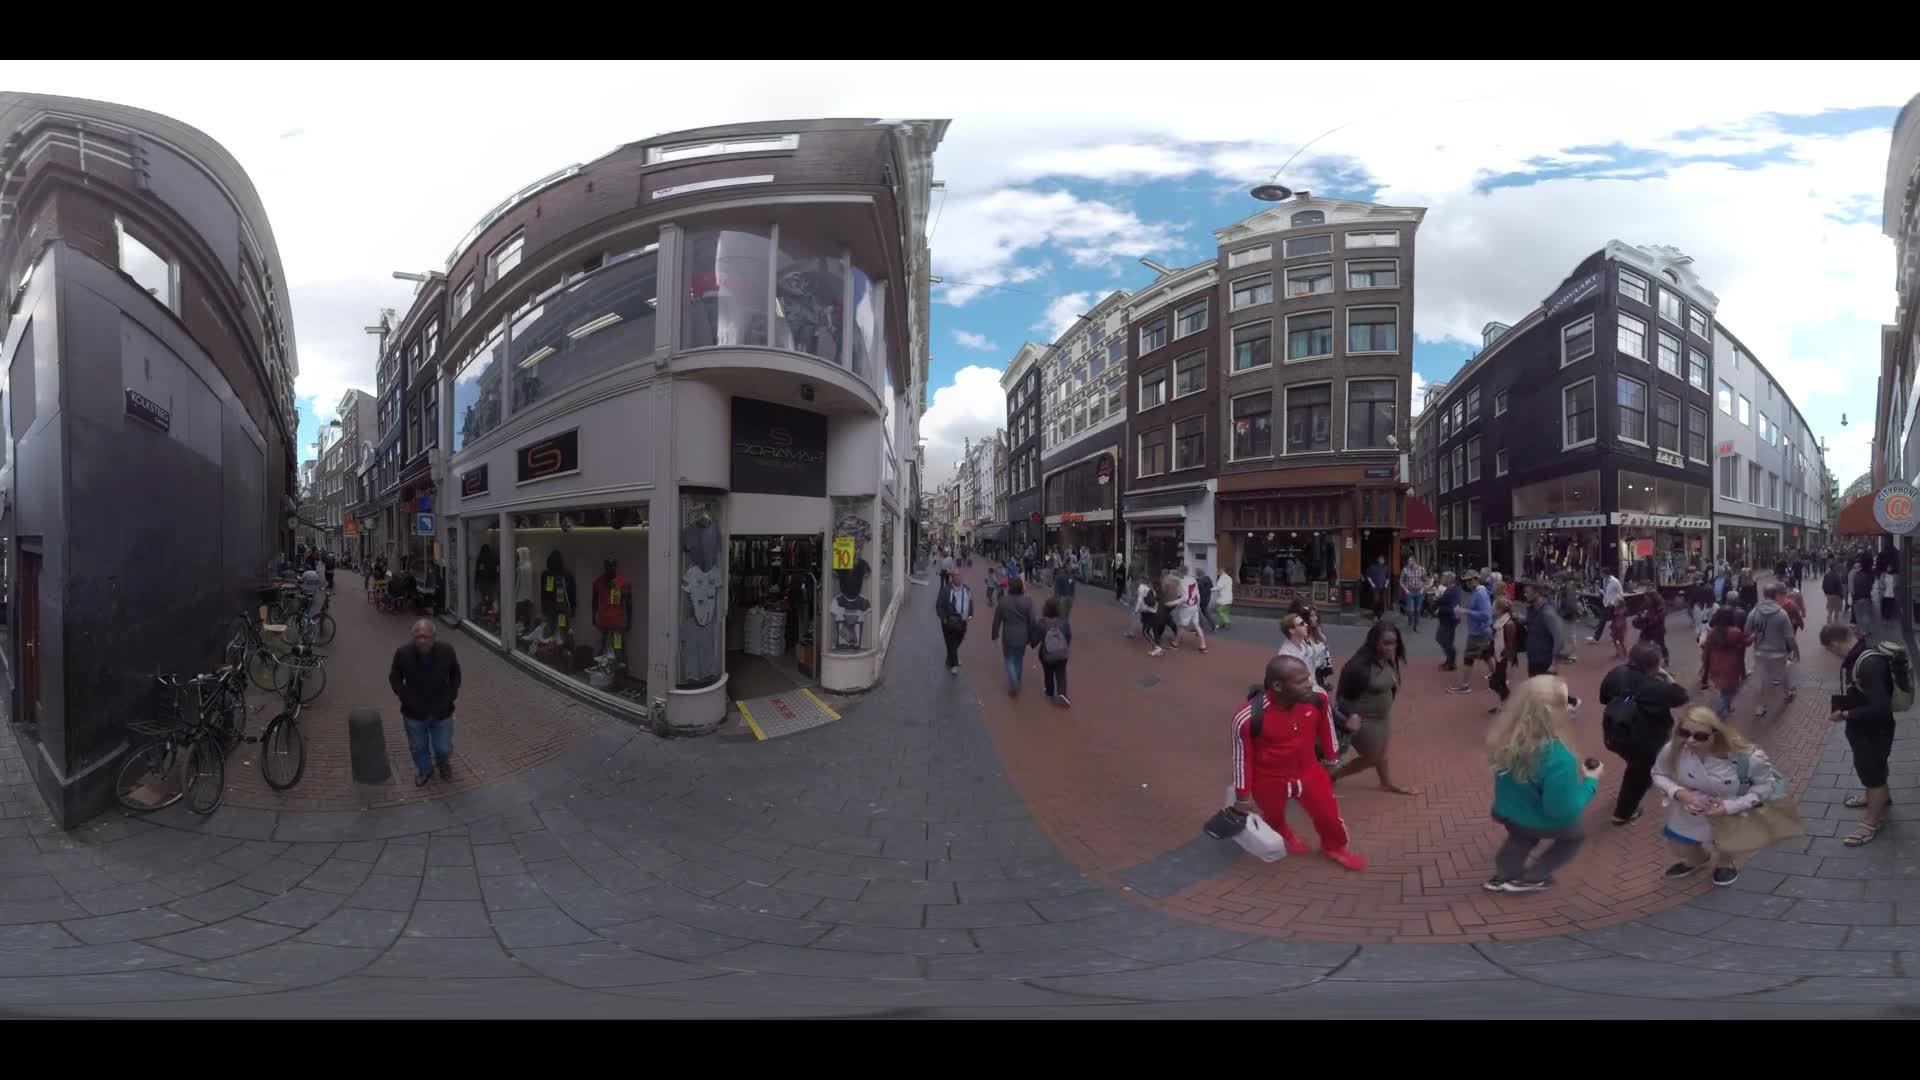 AMSTERDAM, NETHERLANDS - AUGUST 09, 2016: 360 VR Video. People traffic in the paved alleways with stores and cafes located on ground floors of the houses